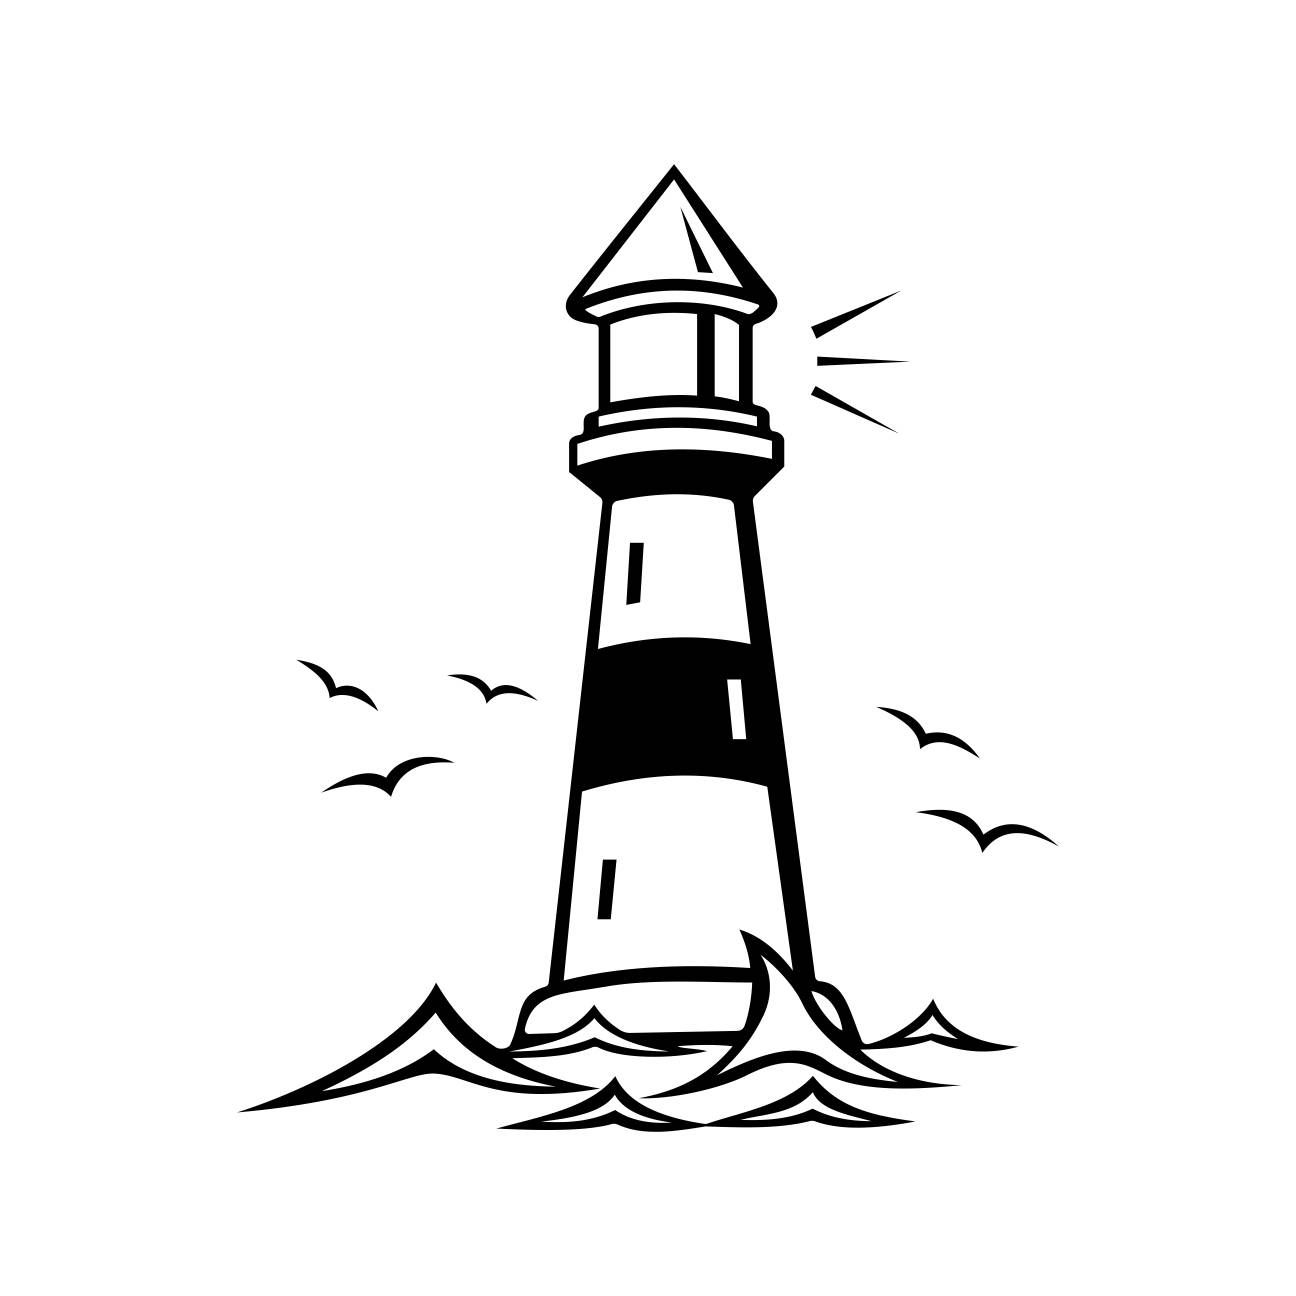 Lighthouse Silhouette Vector at GetDrawings com | Free for personal